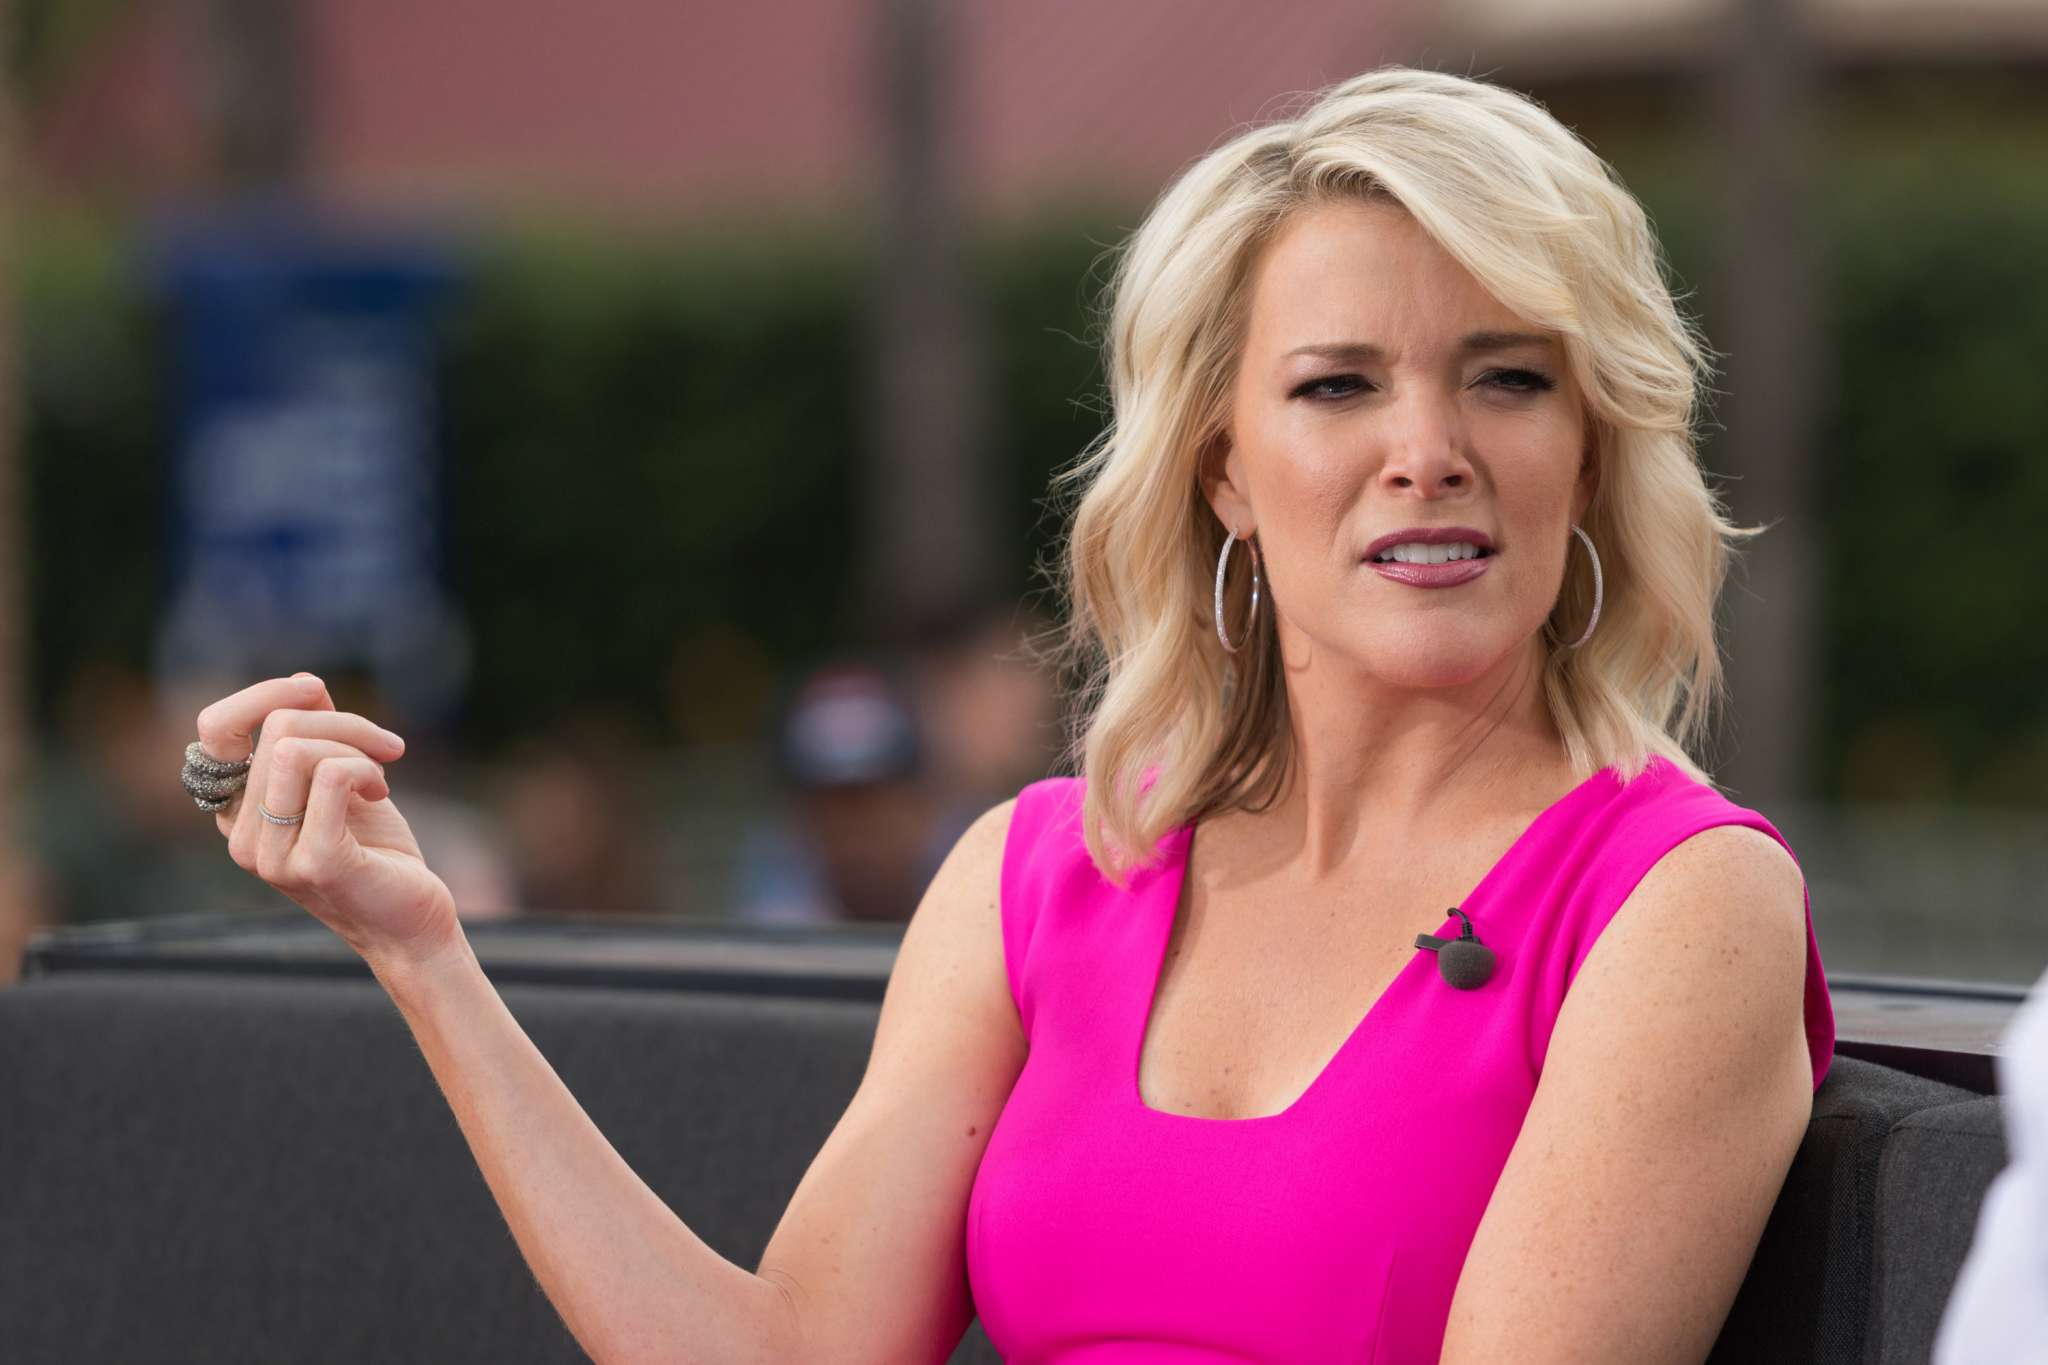 """megyn-kelly-and-nbc-news-agreed-to-her-exit-terms-she-can-leave-the-company-with-a-30-million-payout-people-want-her-back-to-fox-news"""